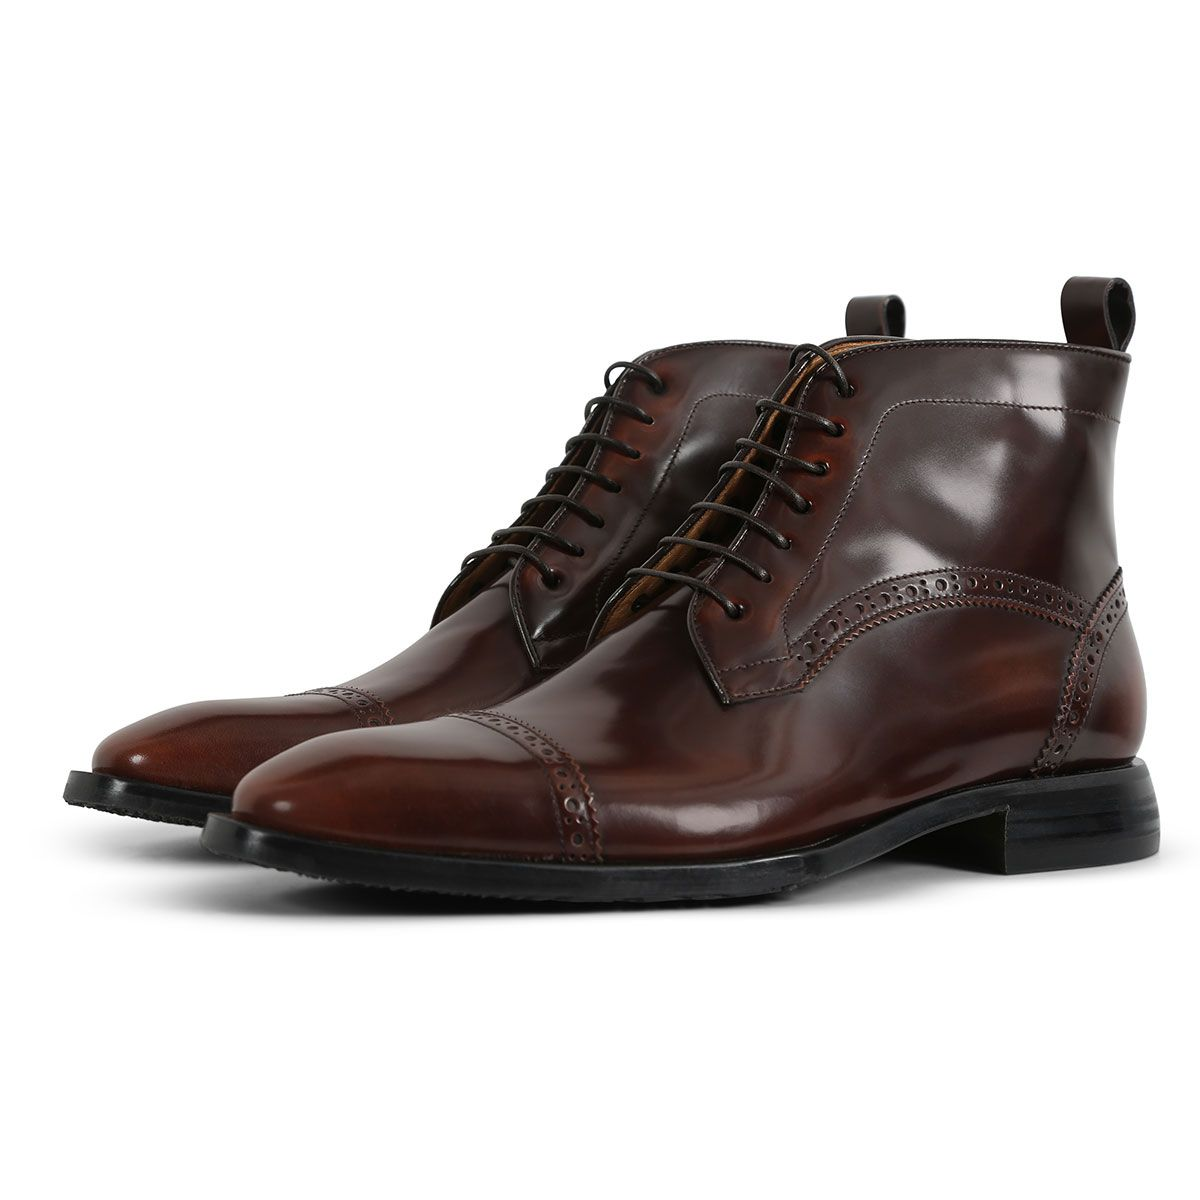 Oliver Sweeney Brown Dark Gradella Dark Brown - Antiqued High-Shine Leather Boot